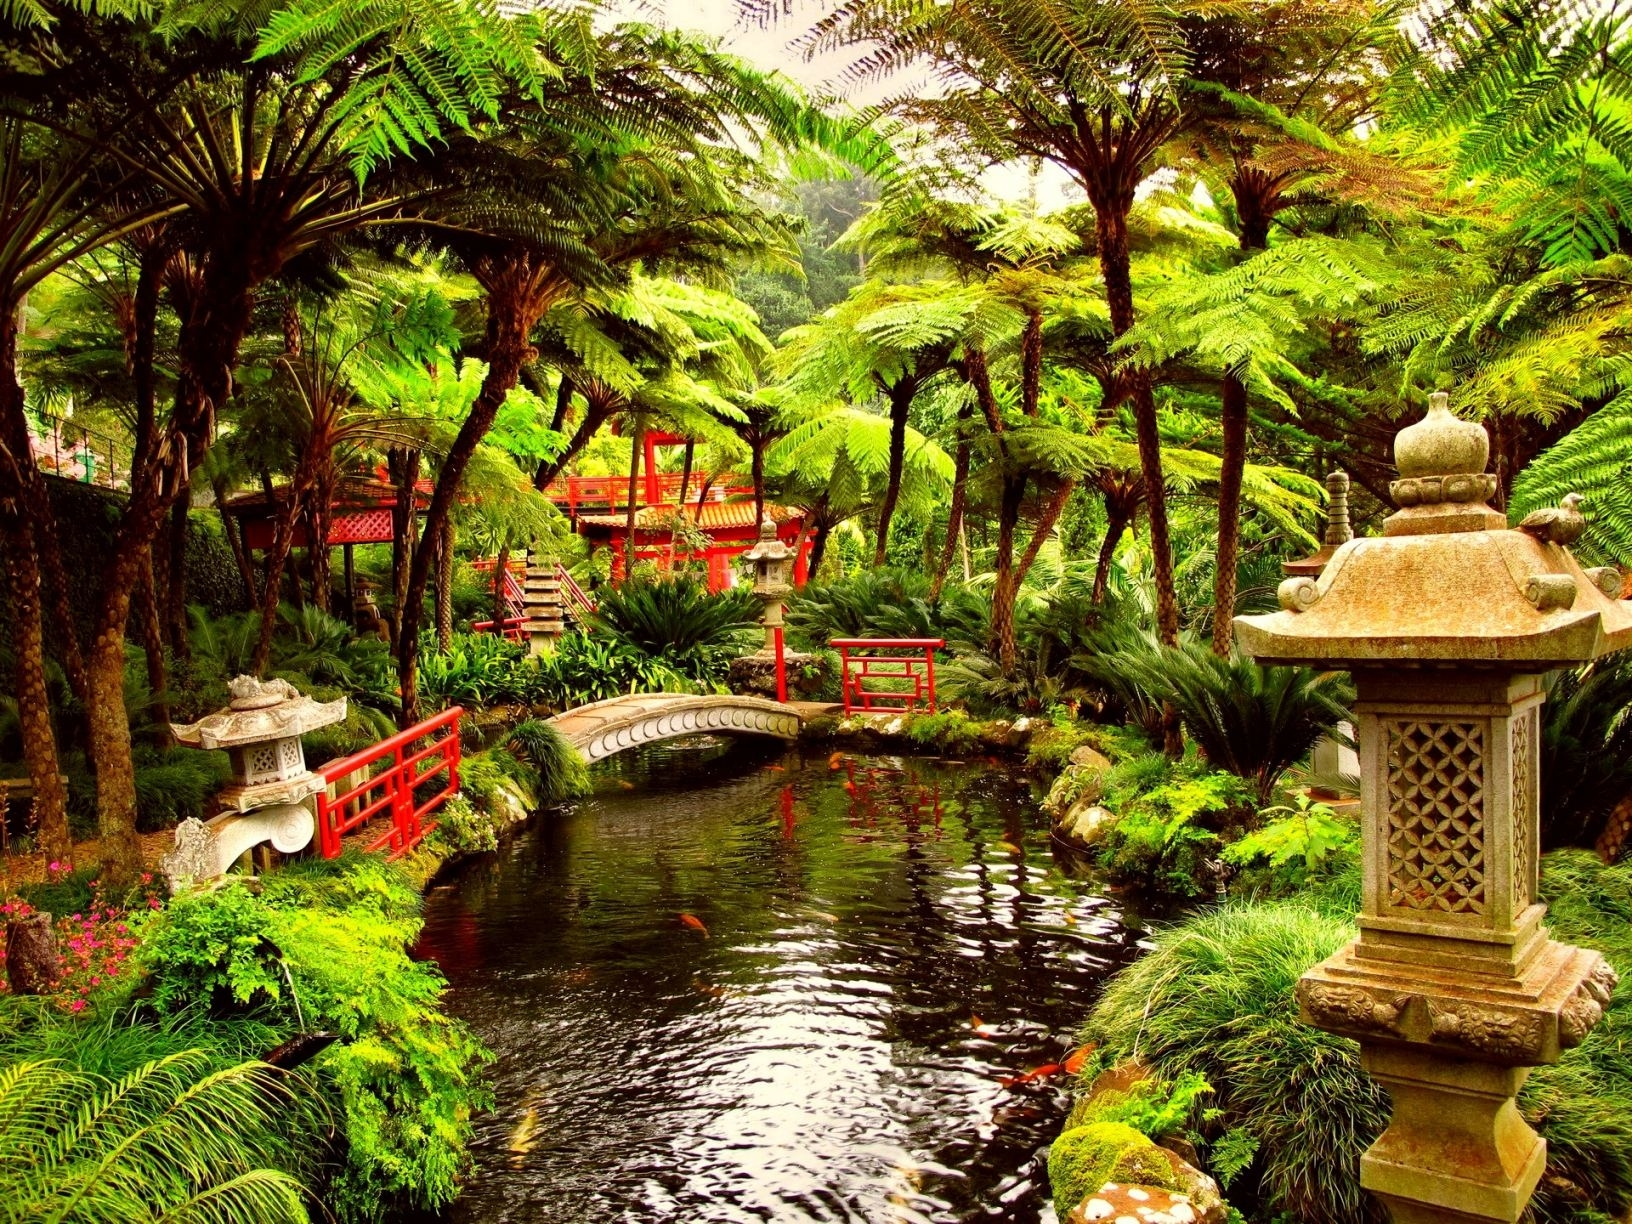 10 Latest Japanese Tea Garden Wallpaper FULL HD 1920×1080 For PC Background